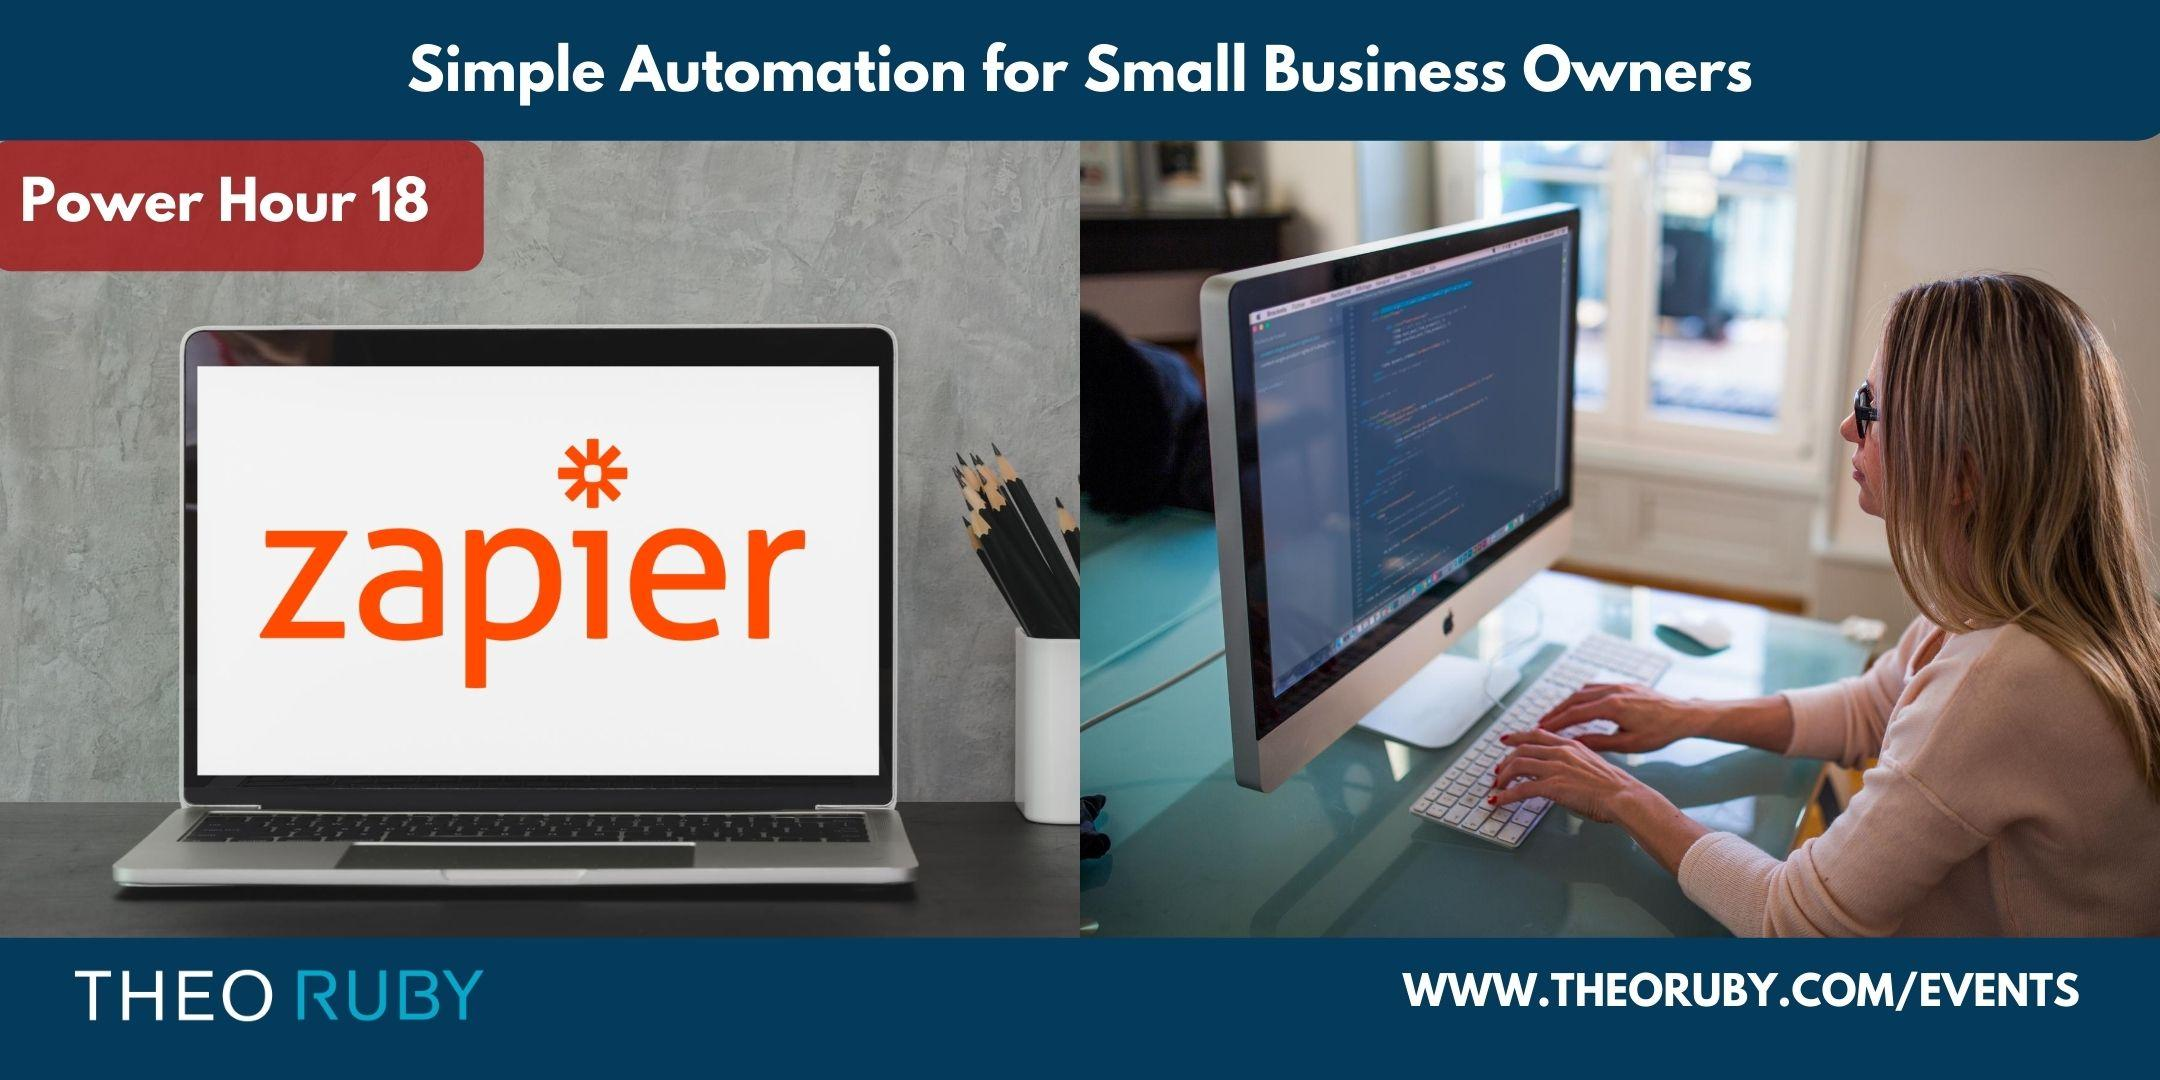 Power Hour 18 | Simple Automation for Small Business Owners 2